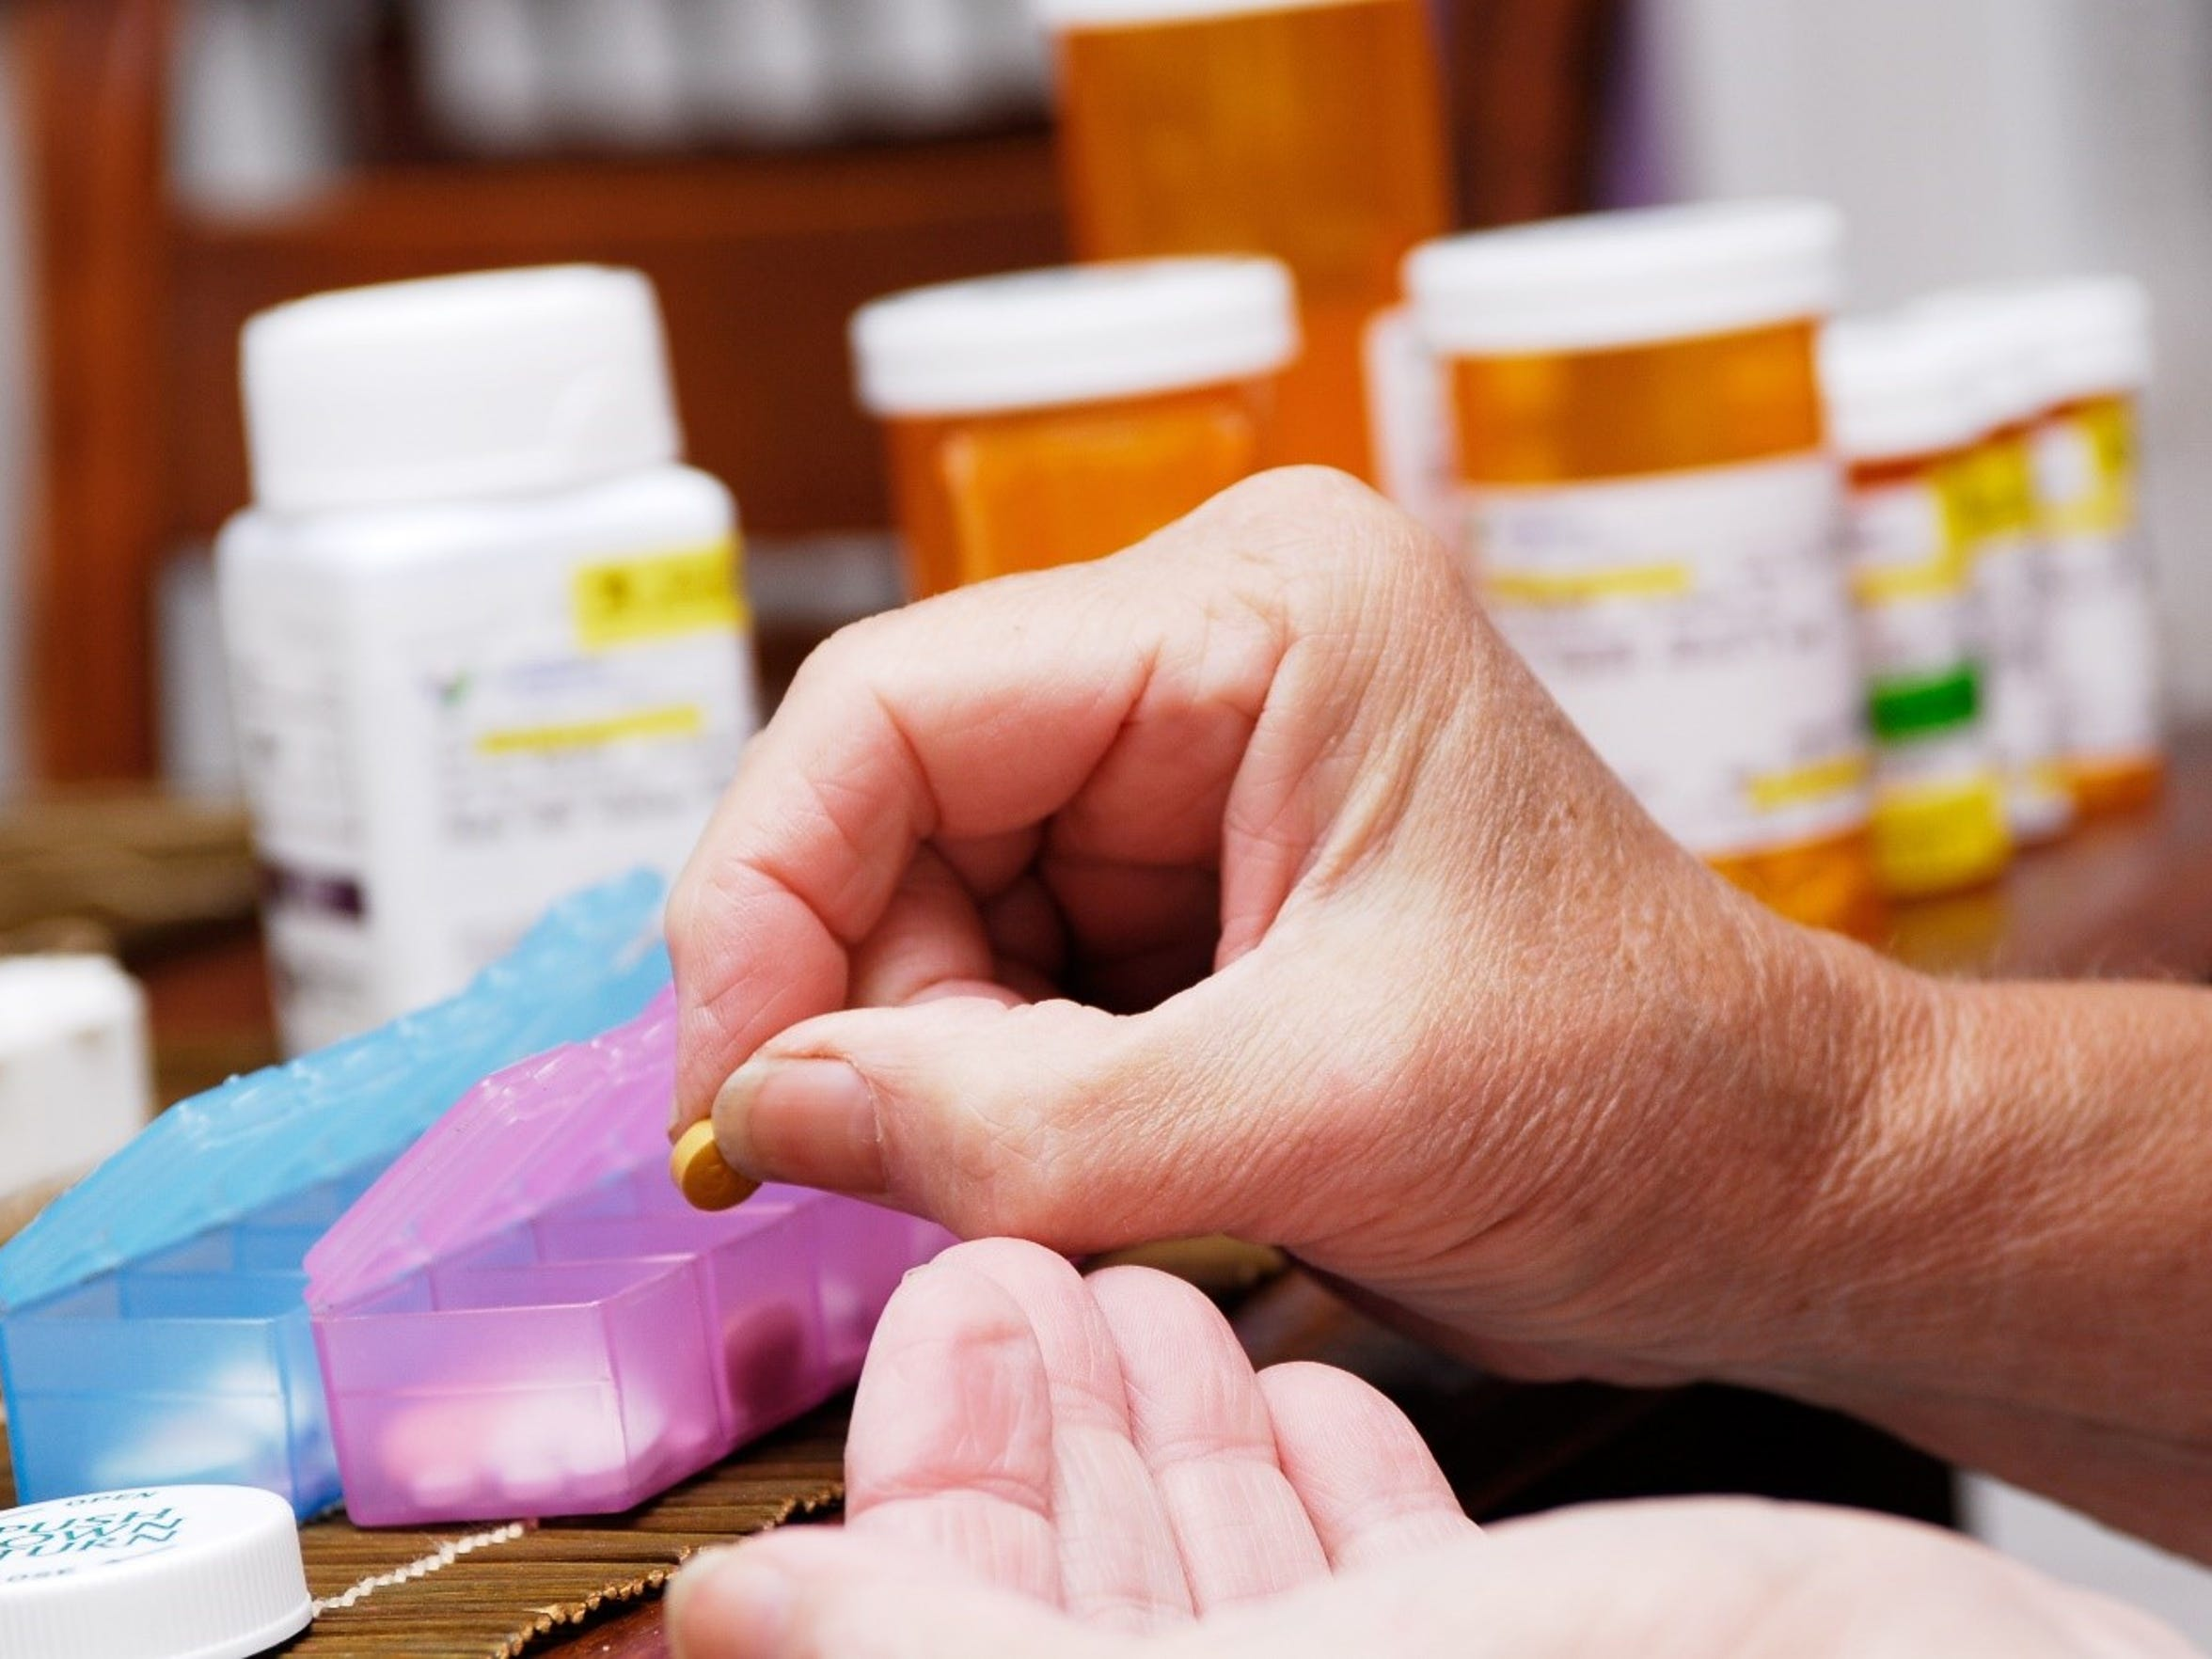 VPS can help patients from medication management to wound care.